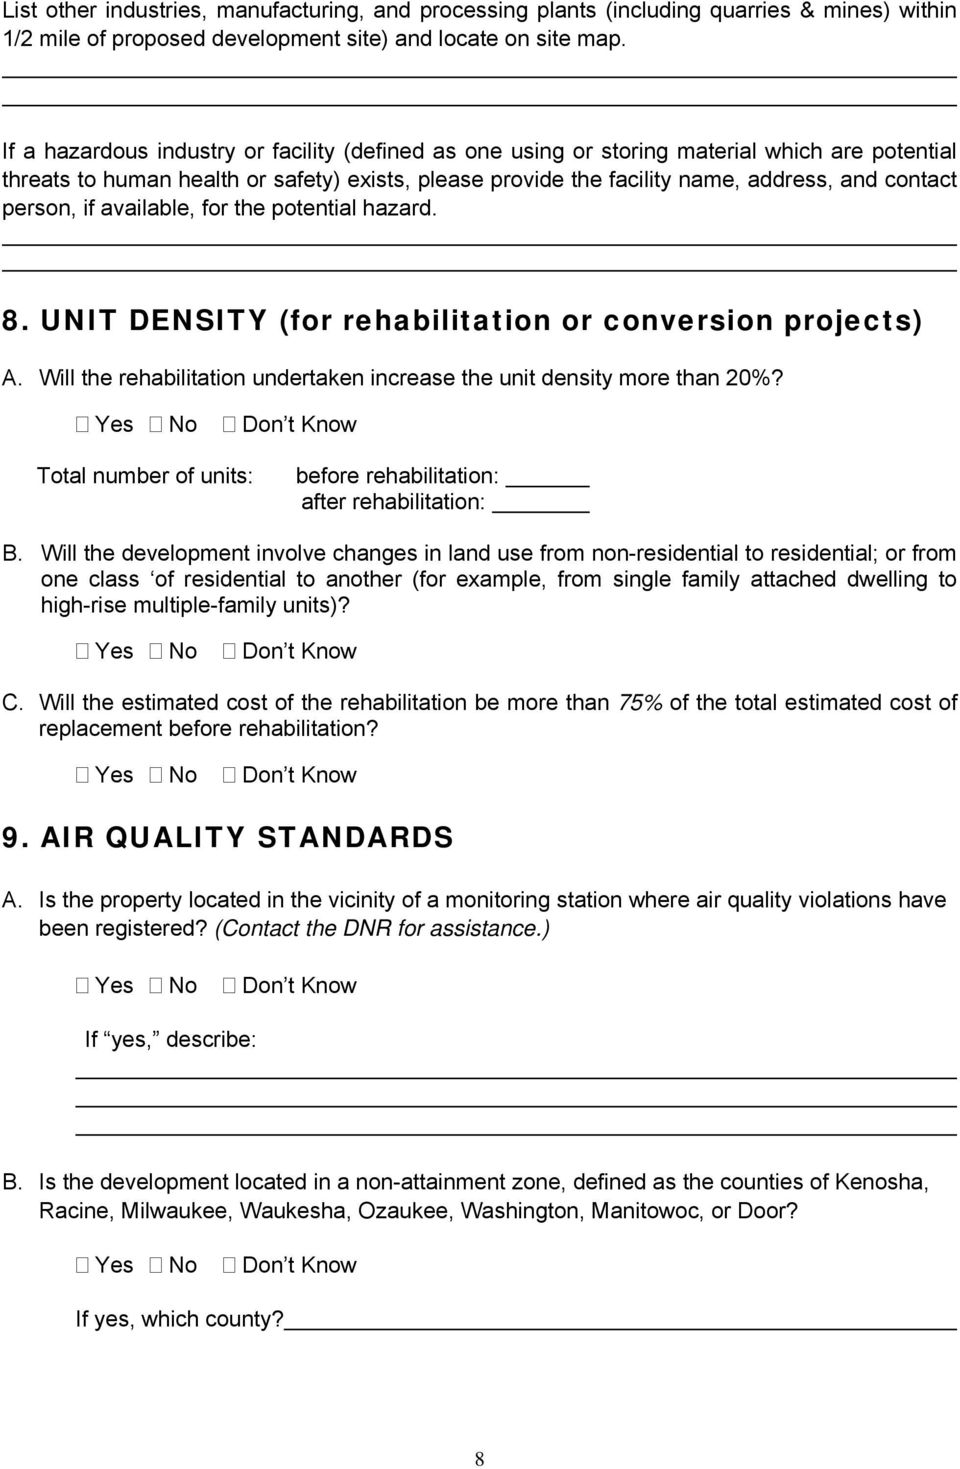 person, if available, for the potential hazard. 8. UNIT DENSITY (for rehabilitation or conversion projects) A. Will the rehabilitation undertaken increase the unit density more than 20%?